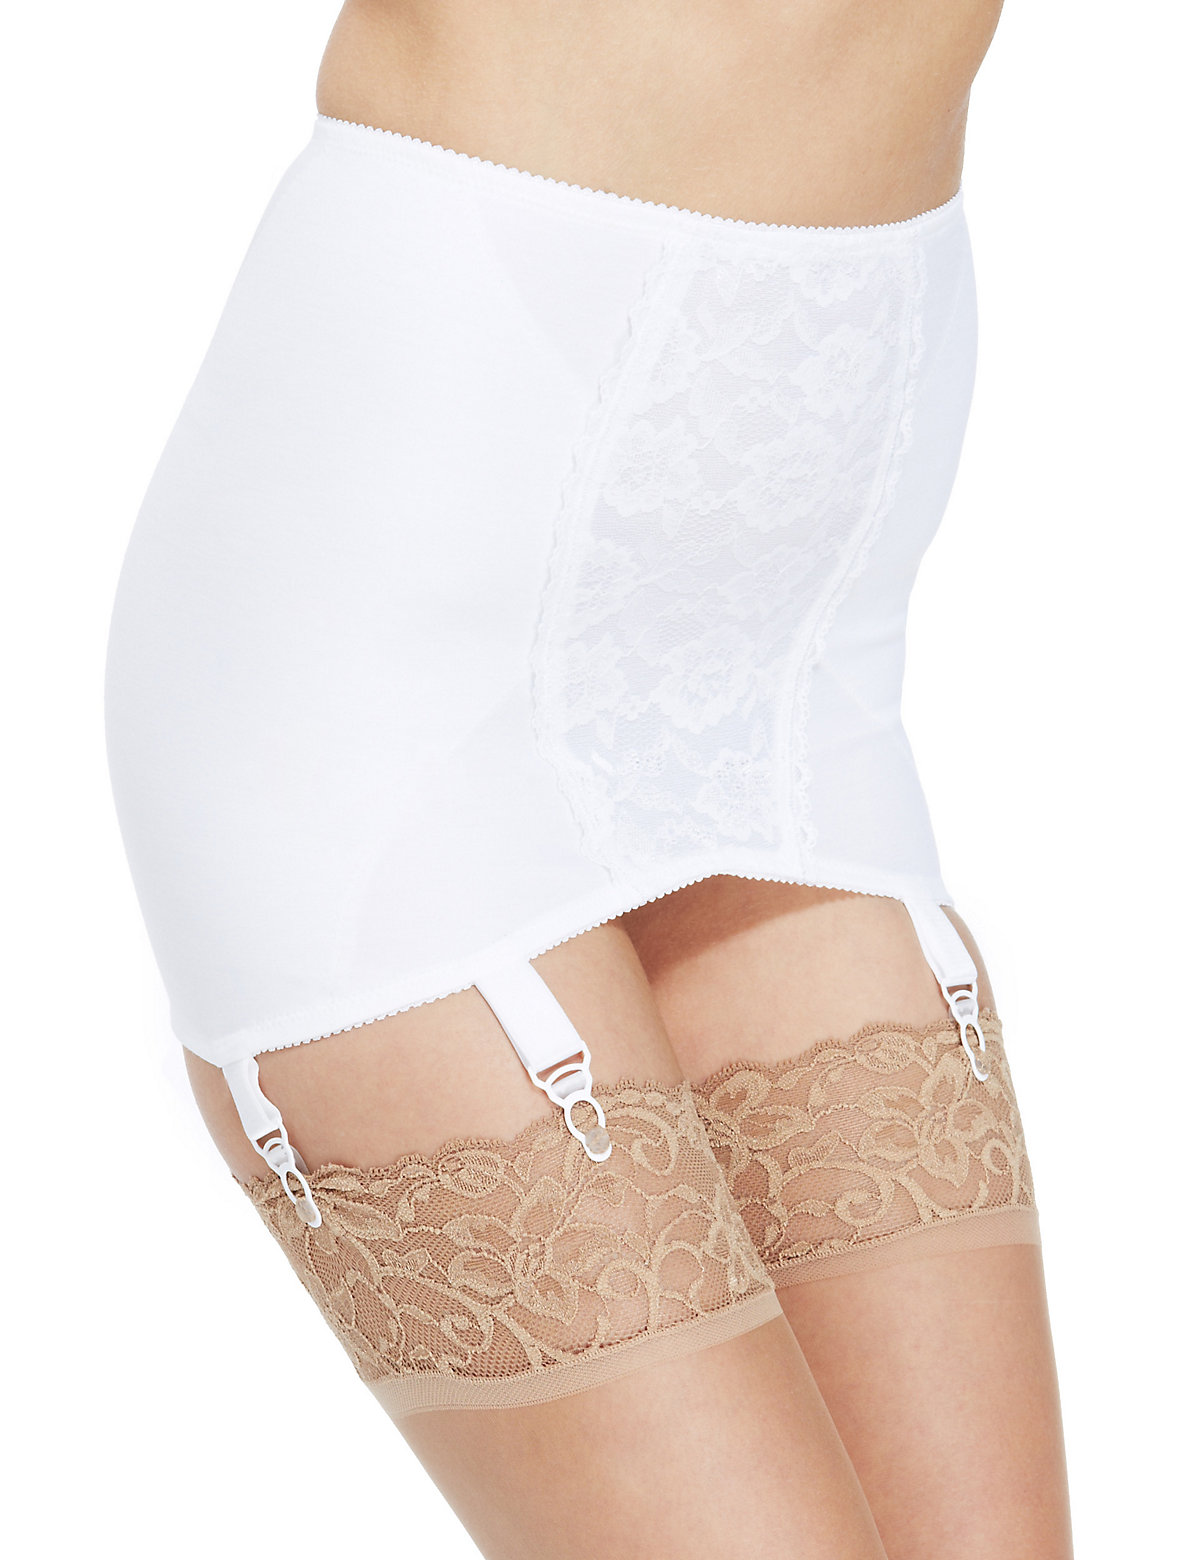 M&S Collection Firm Control Floral Lace Traditional Pull On Girdle